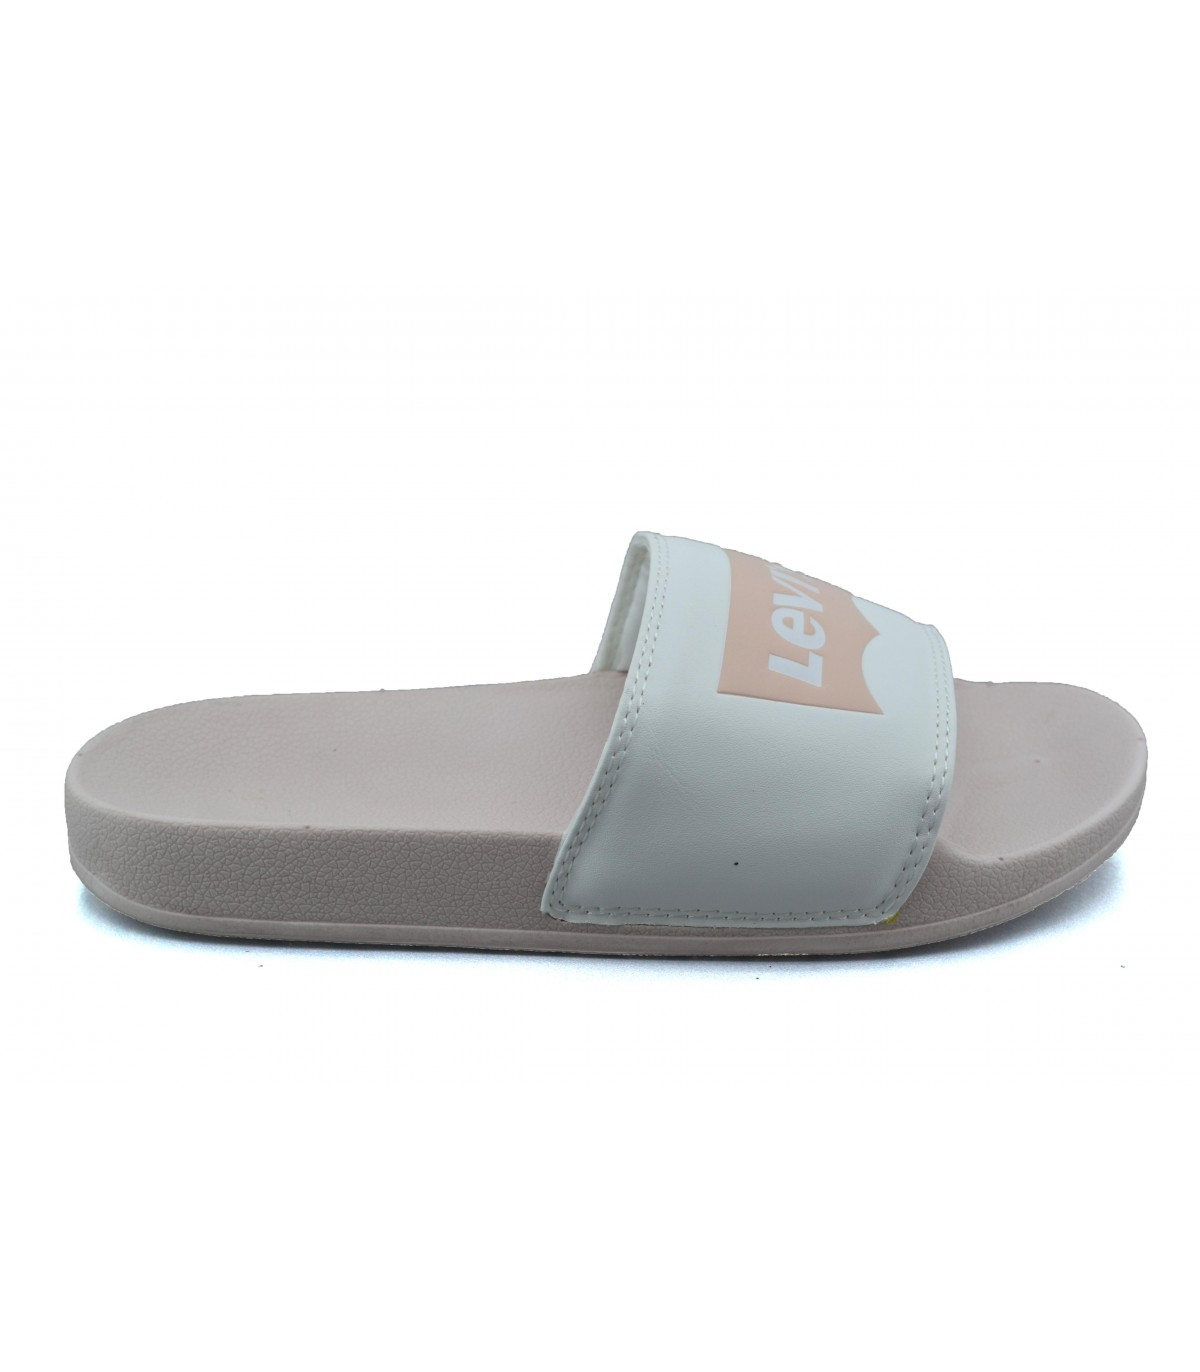 eb5d75090 Chanclas mujer LEVIS June Batwings | Zapatos Online | Calzado Mujer